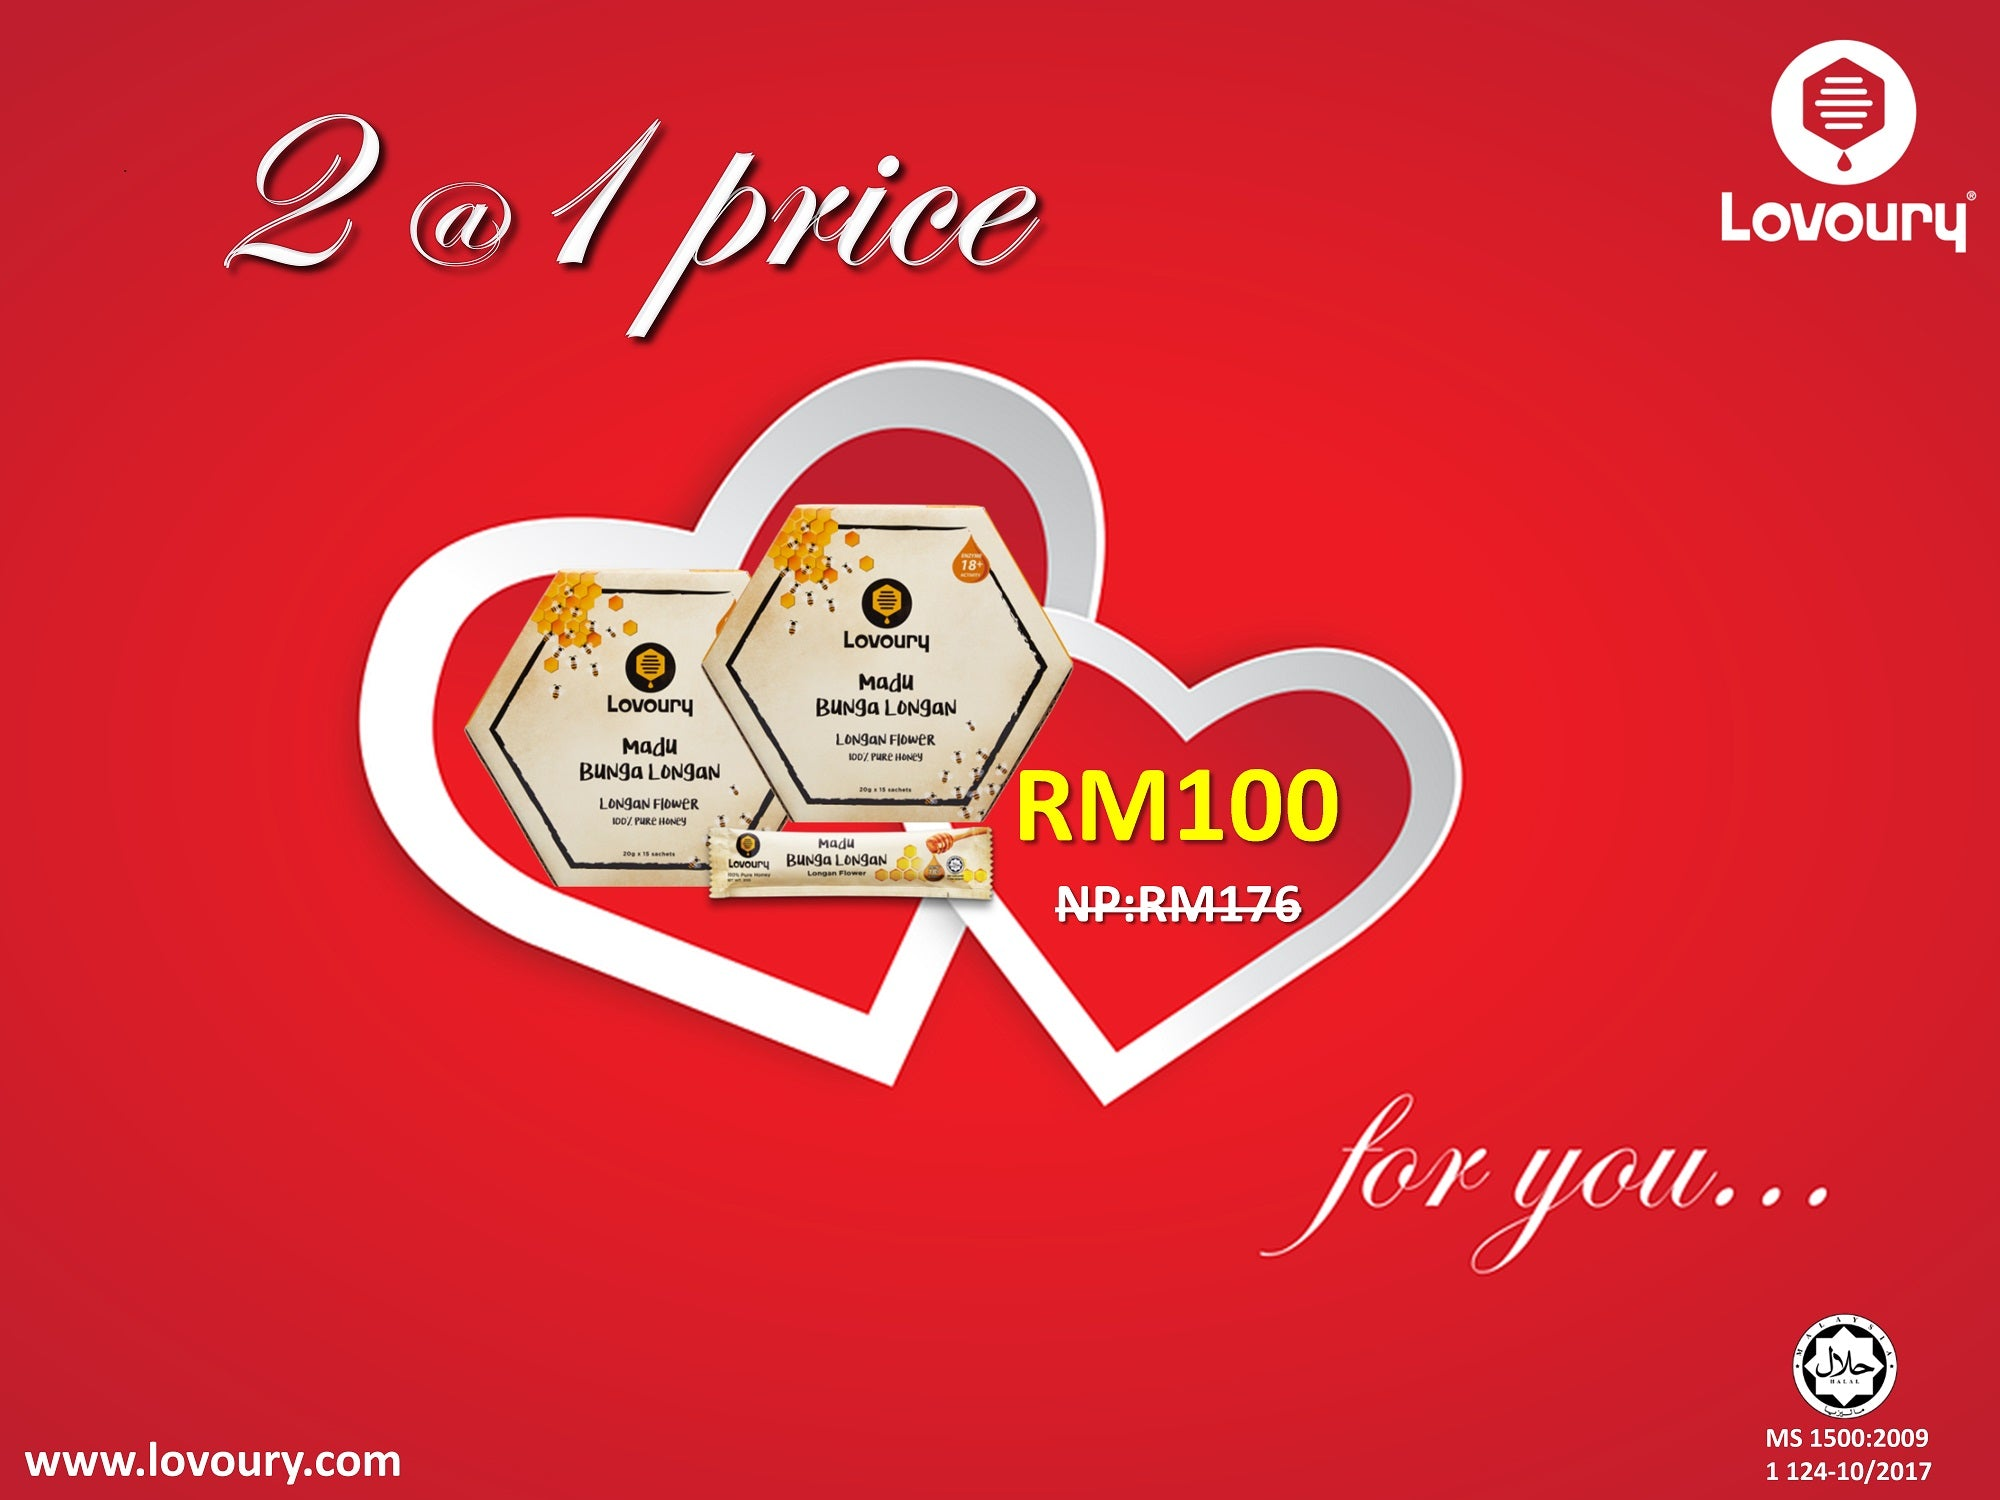 Longan Flower Honey Sachets 2@1 Price Valentine's Special Offer